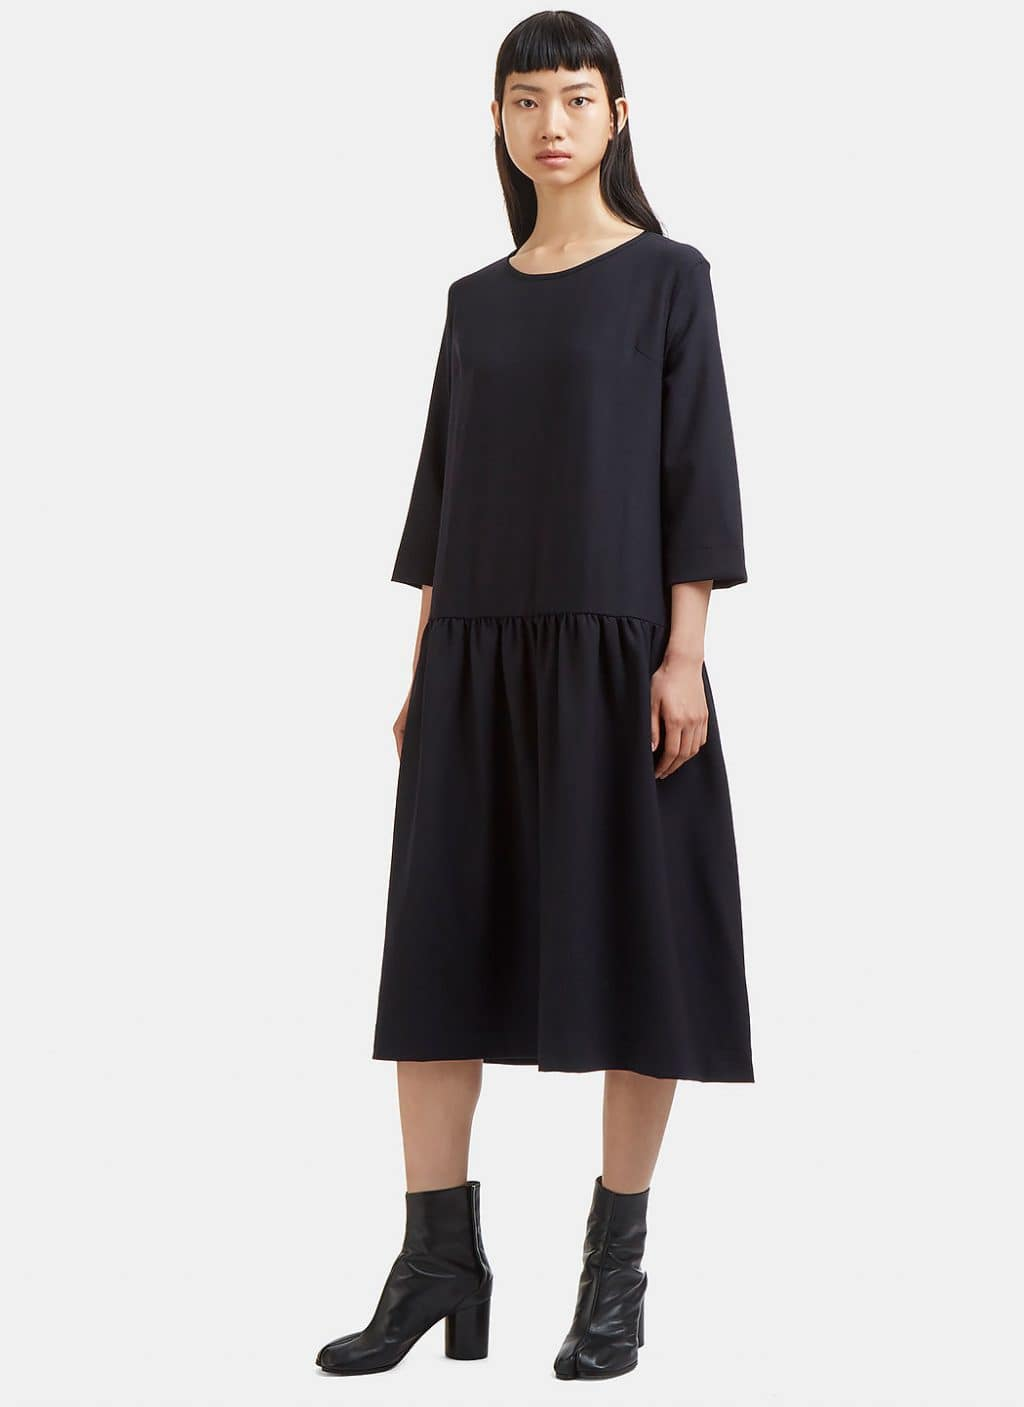 MARVIELAB Oversized Dropped Waist Navy Dress